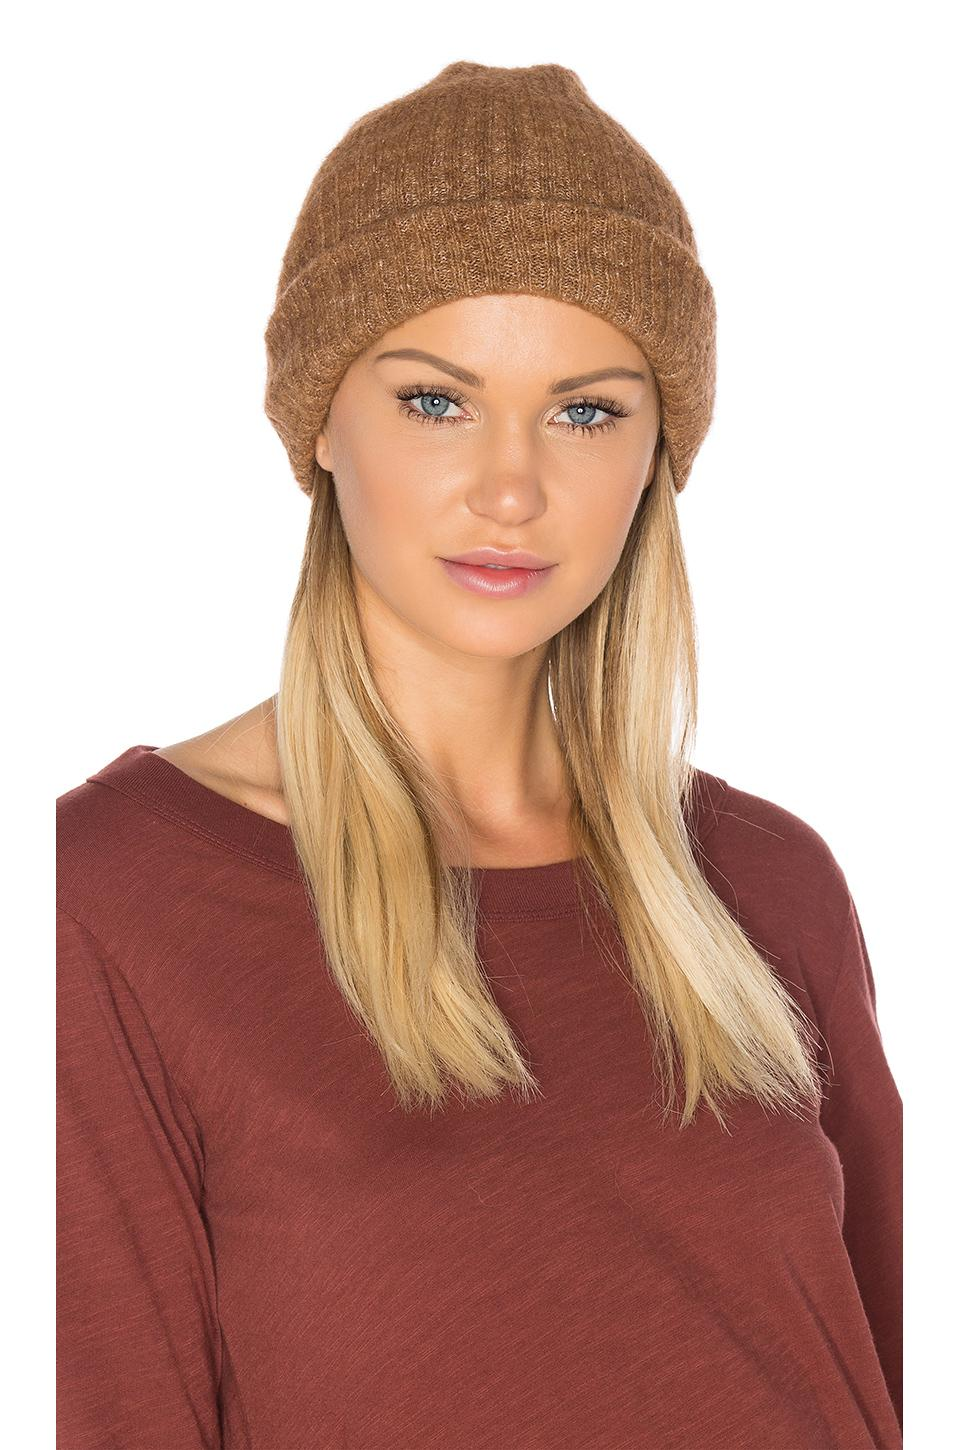 Lyst - American Vintage Wixtonchurch Beanie f41060823a2